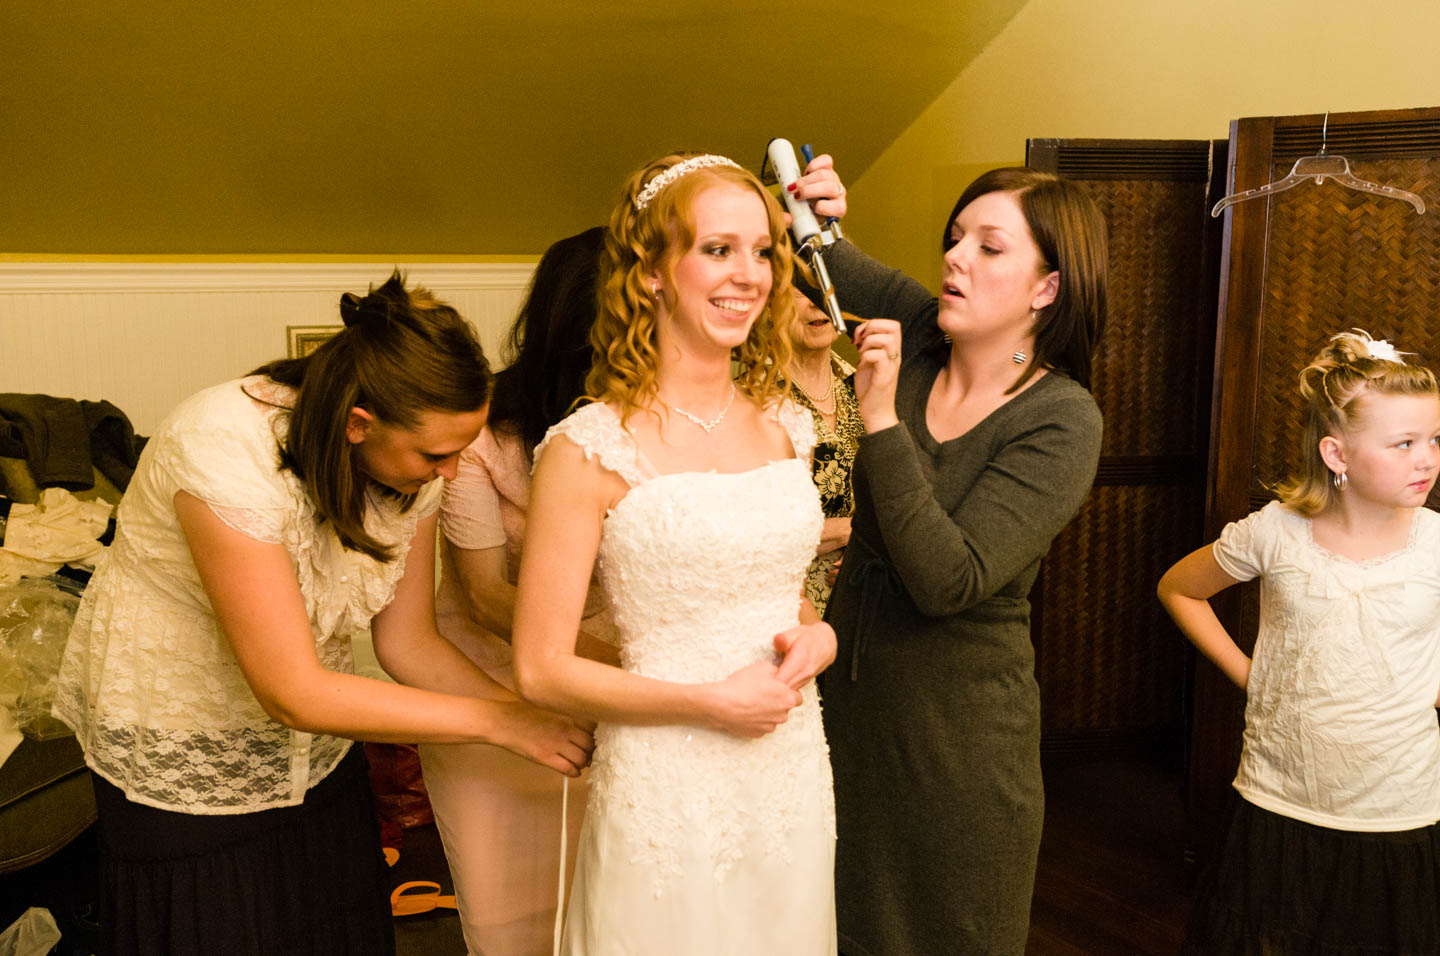 Bride receives the finishing touches to dress and hair